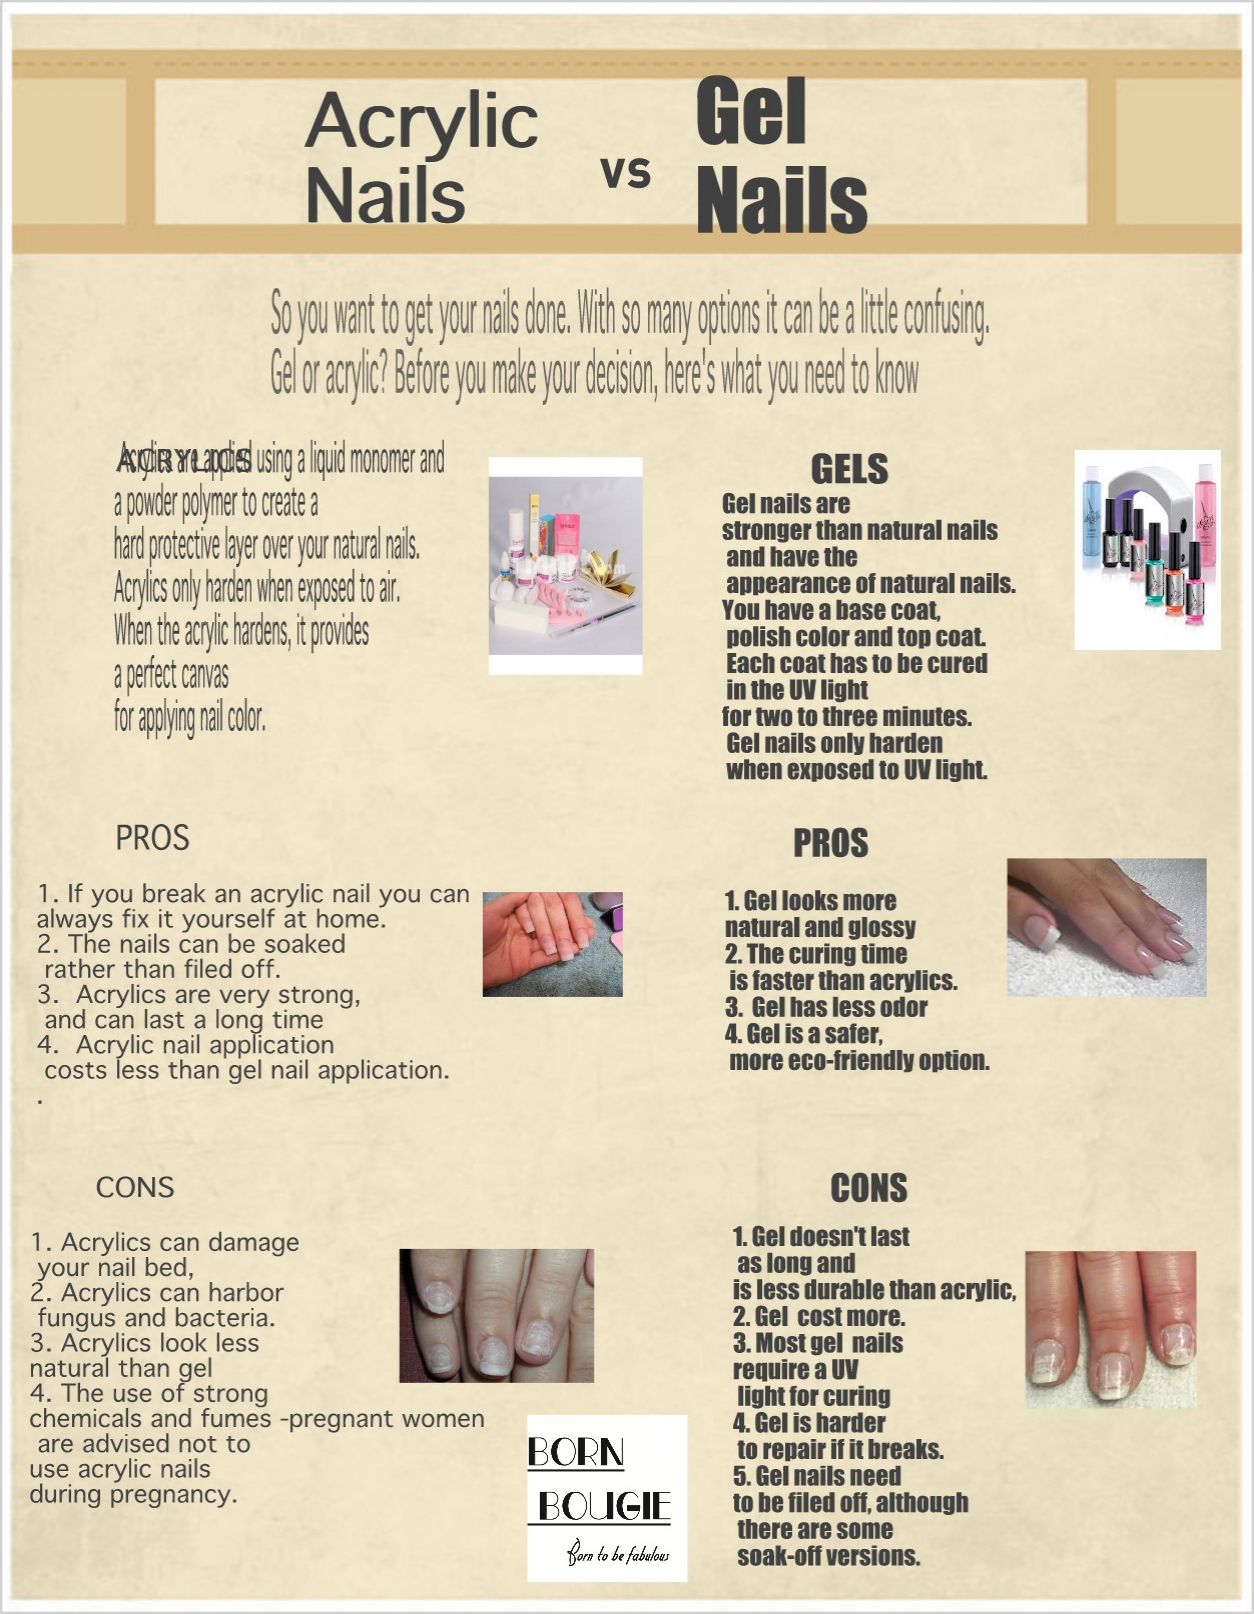 Acrylic Nails vs. Gel Nails; Which is Better?